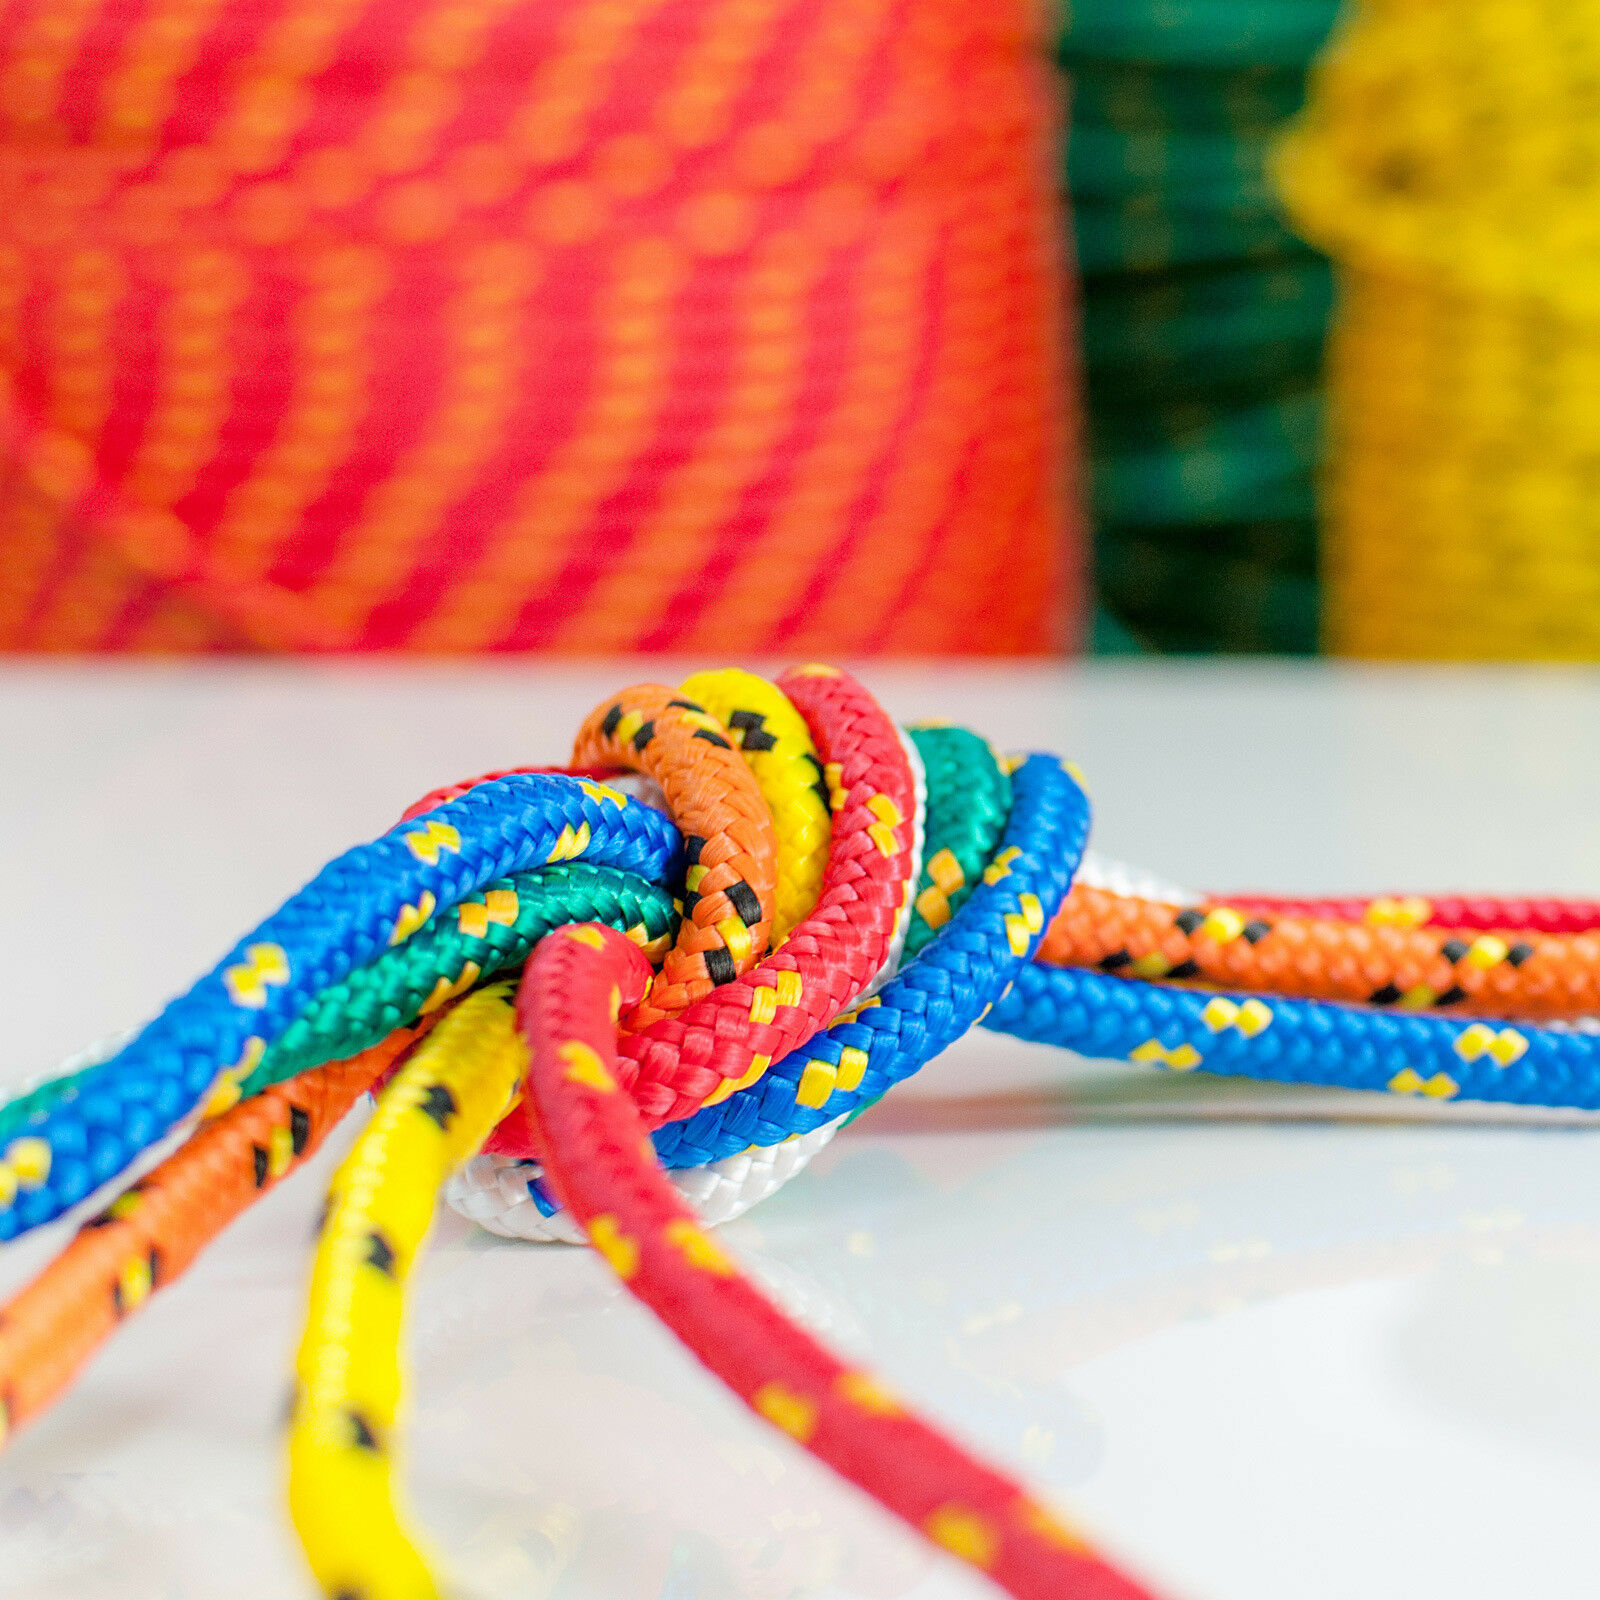 20mm POLYPROPYLENE ROPE braided polyrope weatherproof durable cord synthetic